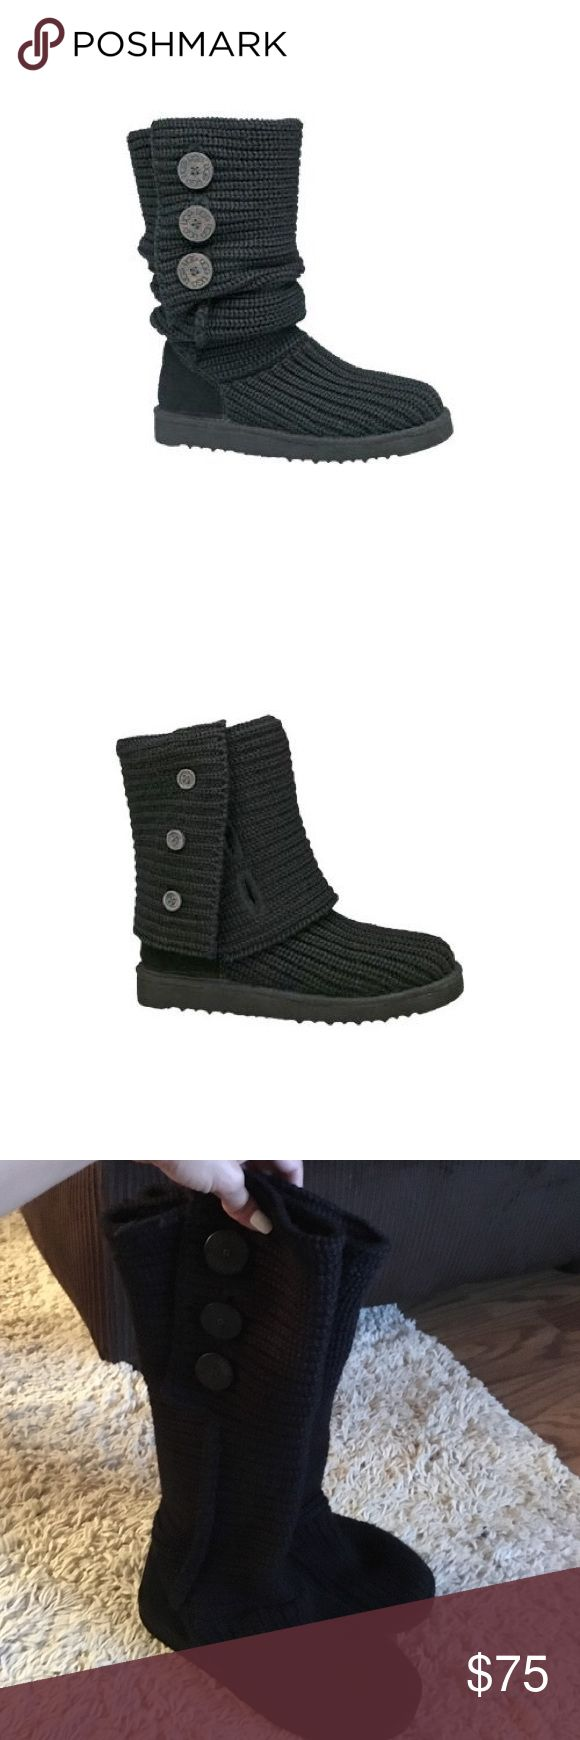 Black Classic Cardy Ugg Boots Gently worn black knit Uggs. Some tilling on the wool. Only worn one season. Size 6 but run a little big due to the knit stretching. UGG Shoes Winter & Rain Boots